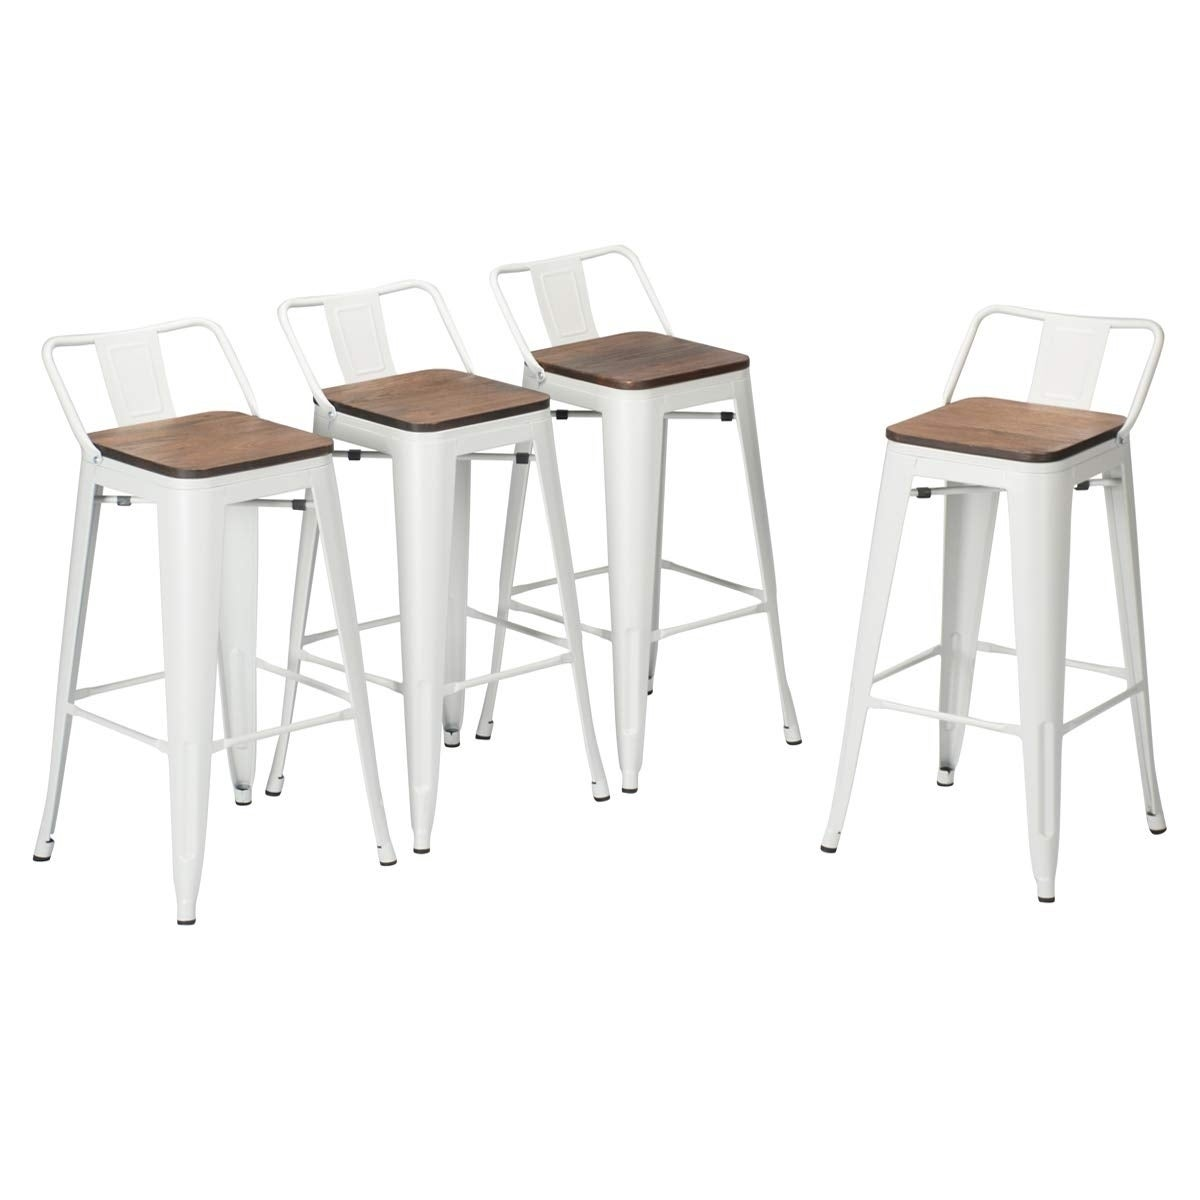 2 PACK High Top Chair Dining Room Furniture Counter Accessory Bar Stool Steel